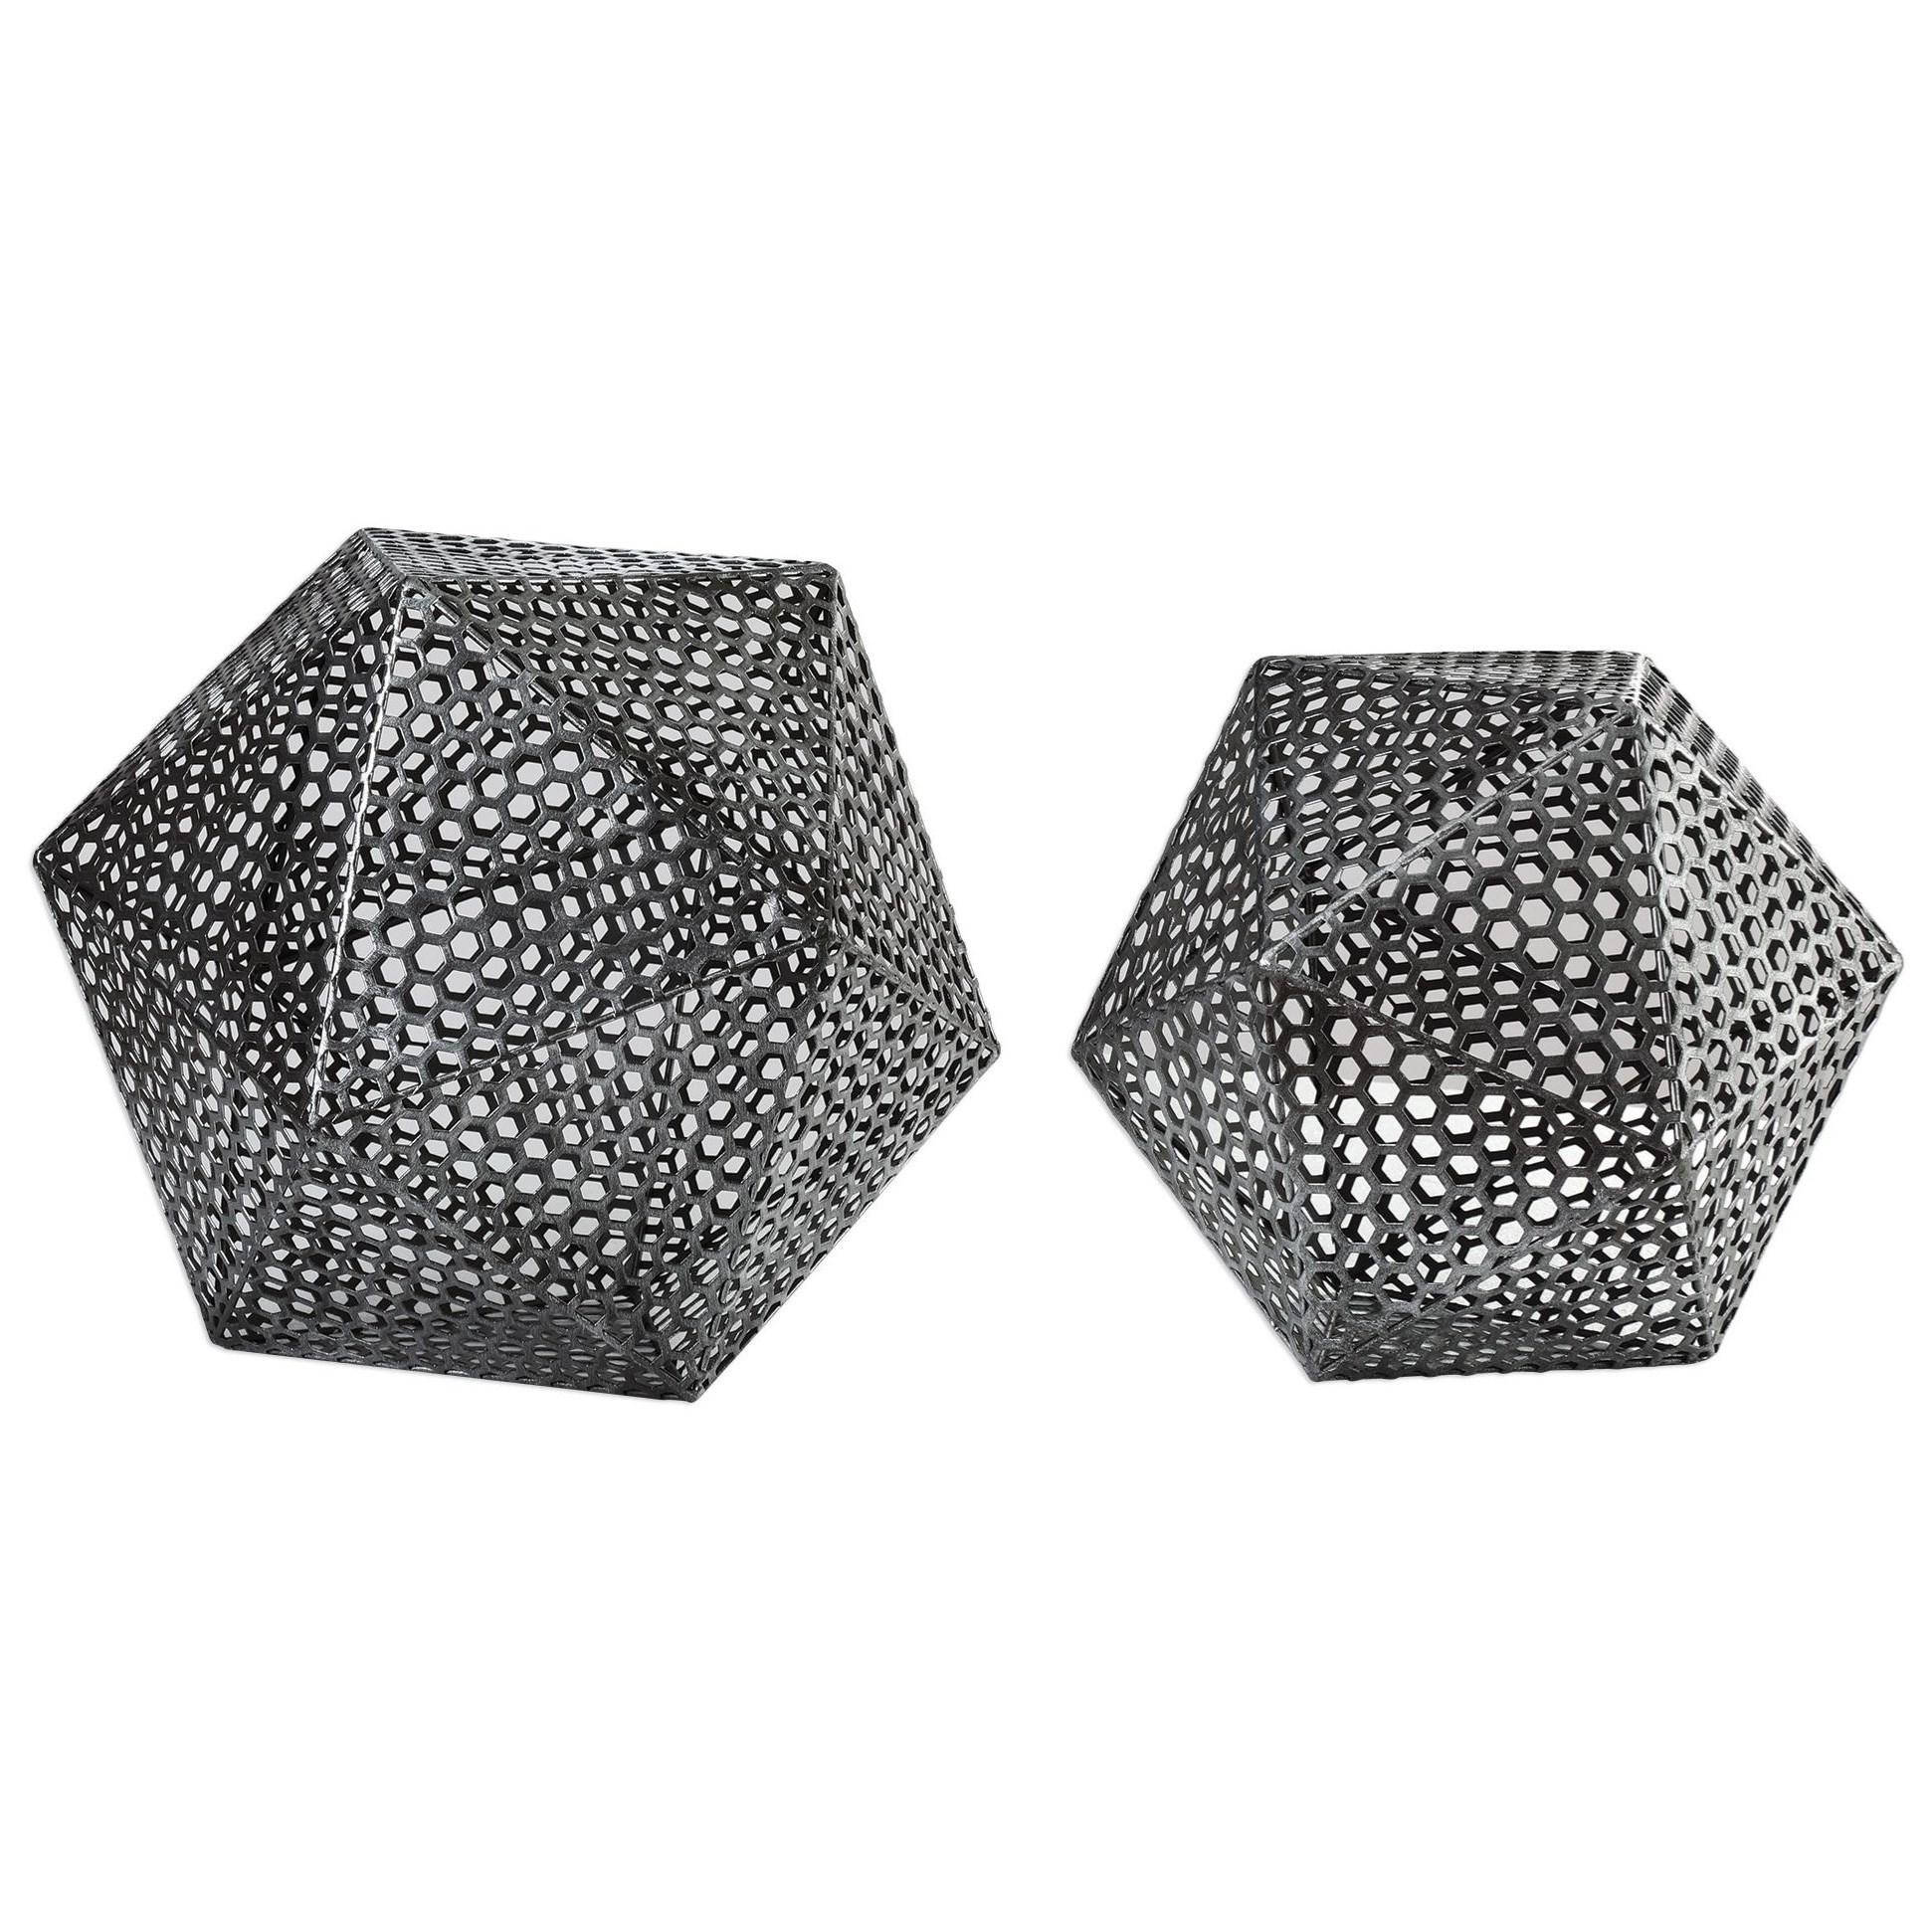 Accessories - Statues and Figurines Kimora Aged Icosahedrons S/2 at Becker Furniture